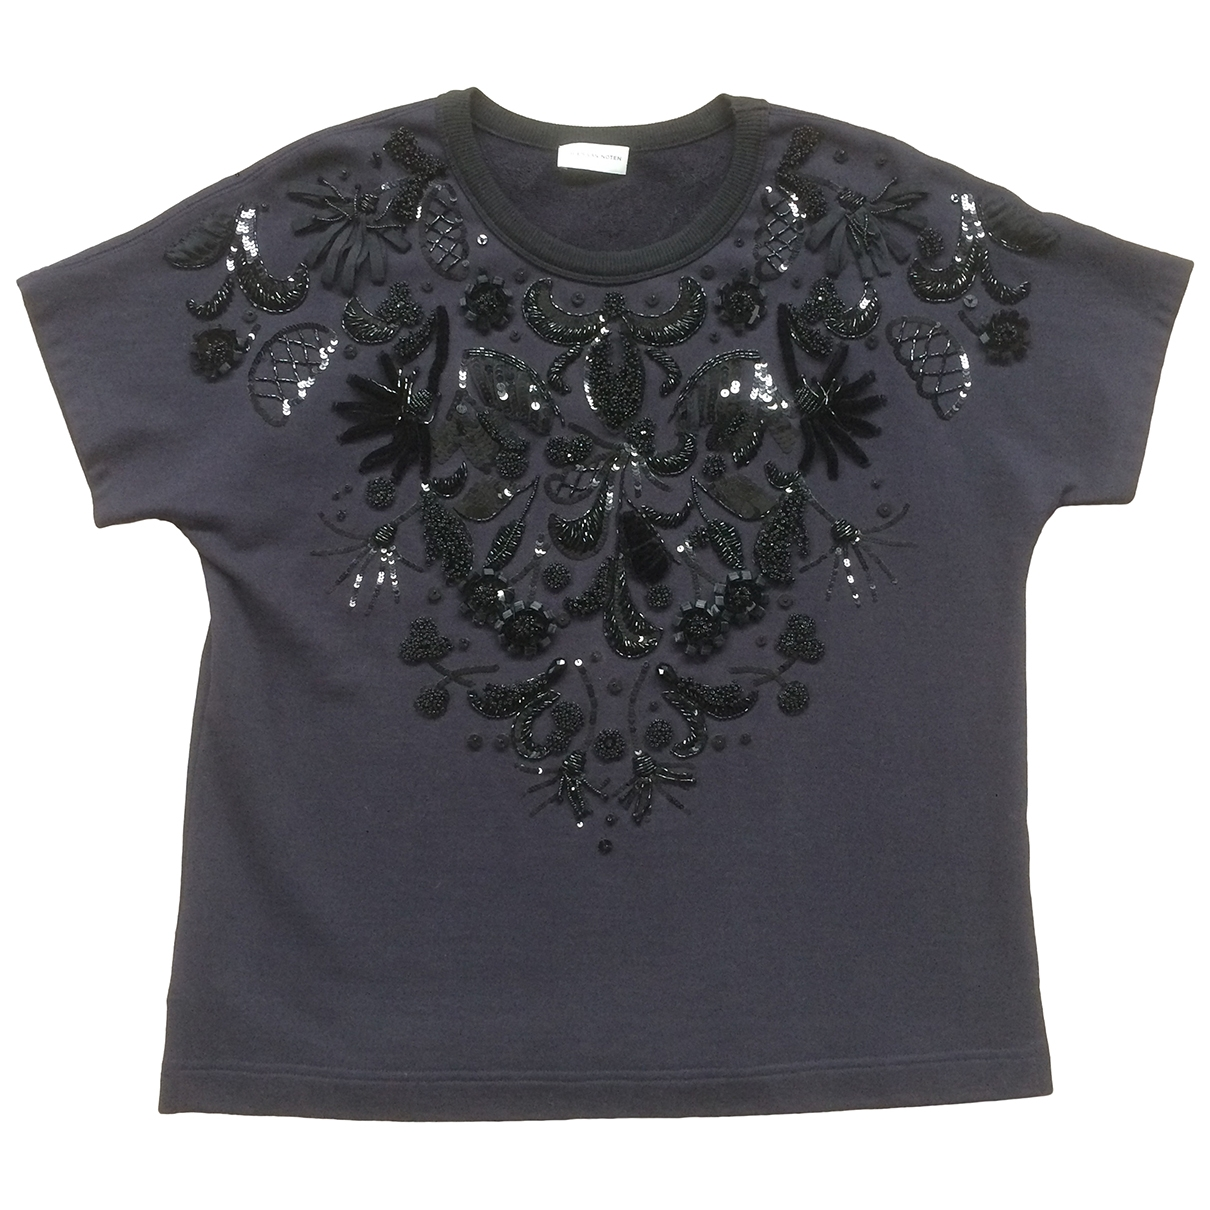 Dries Van Noten \N Navy Cotton  top for Women S International